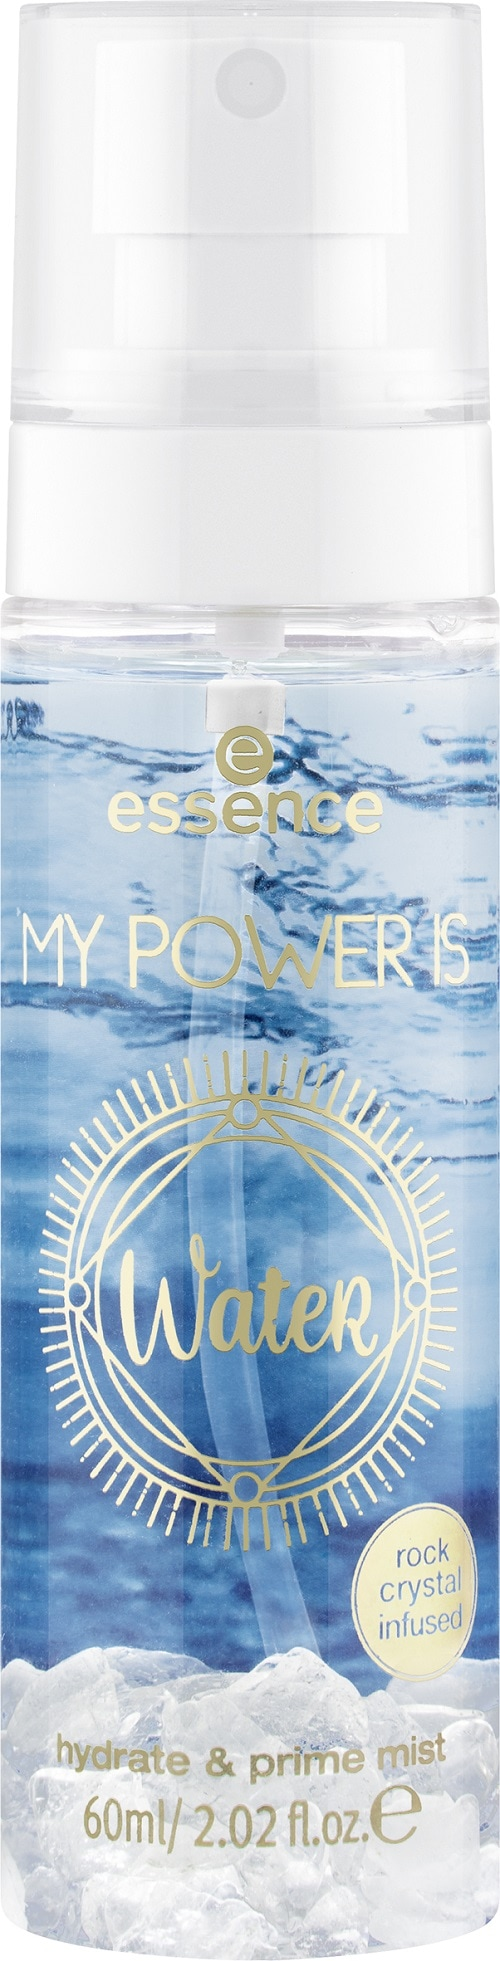 essence MY POWER IS WateR hydrate & prime mist 04